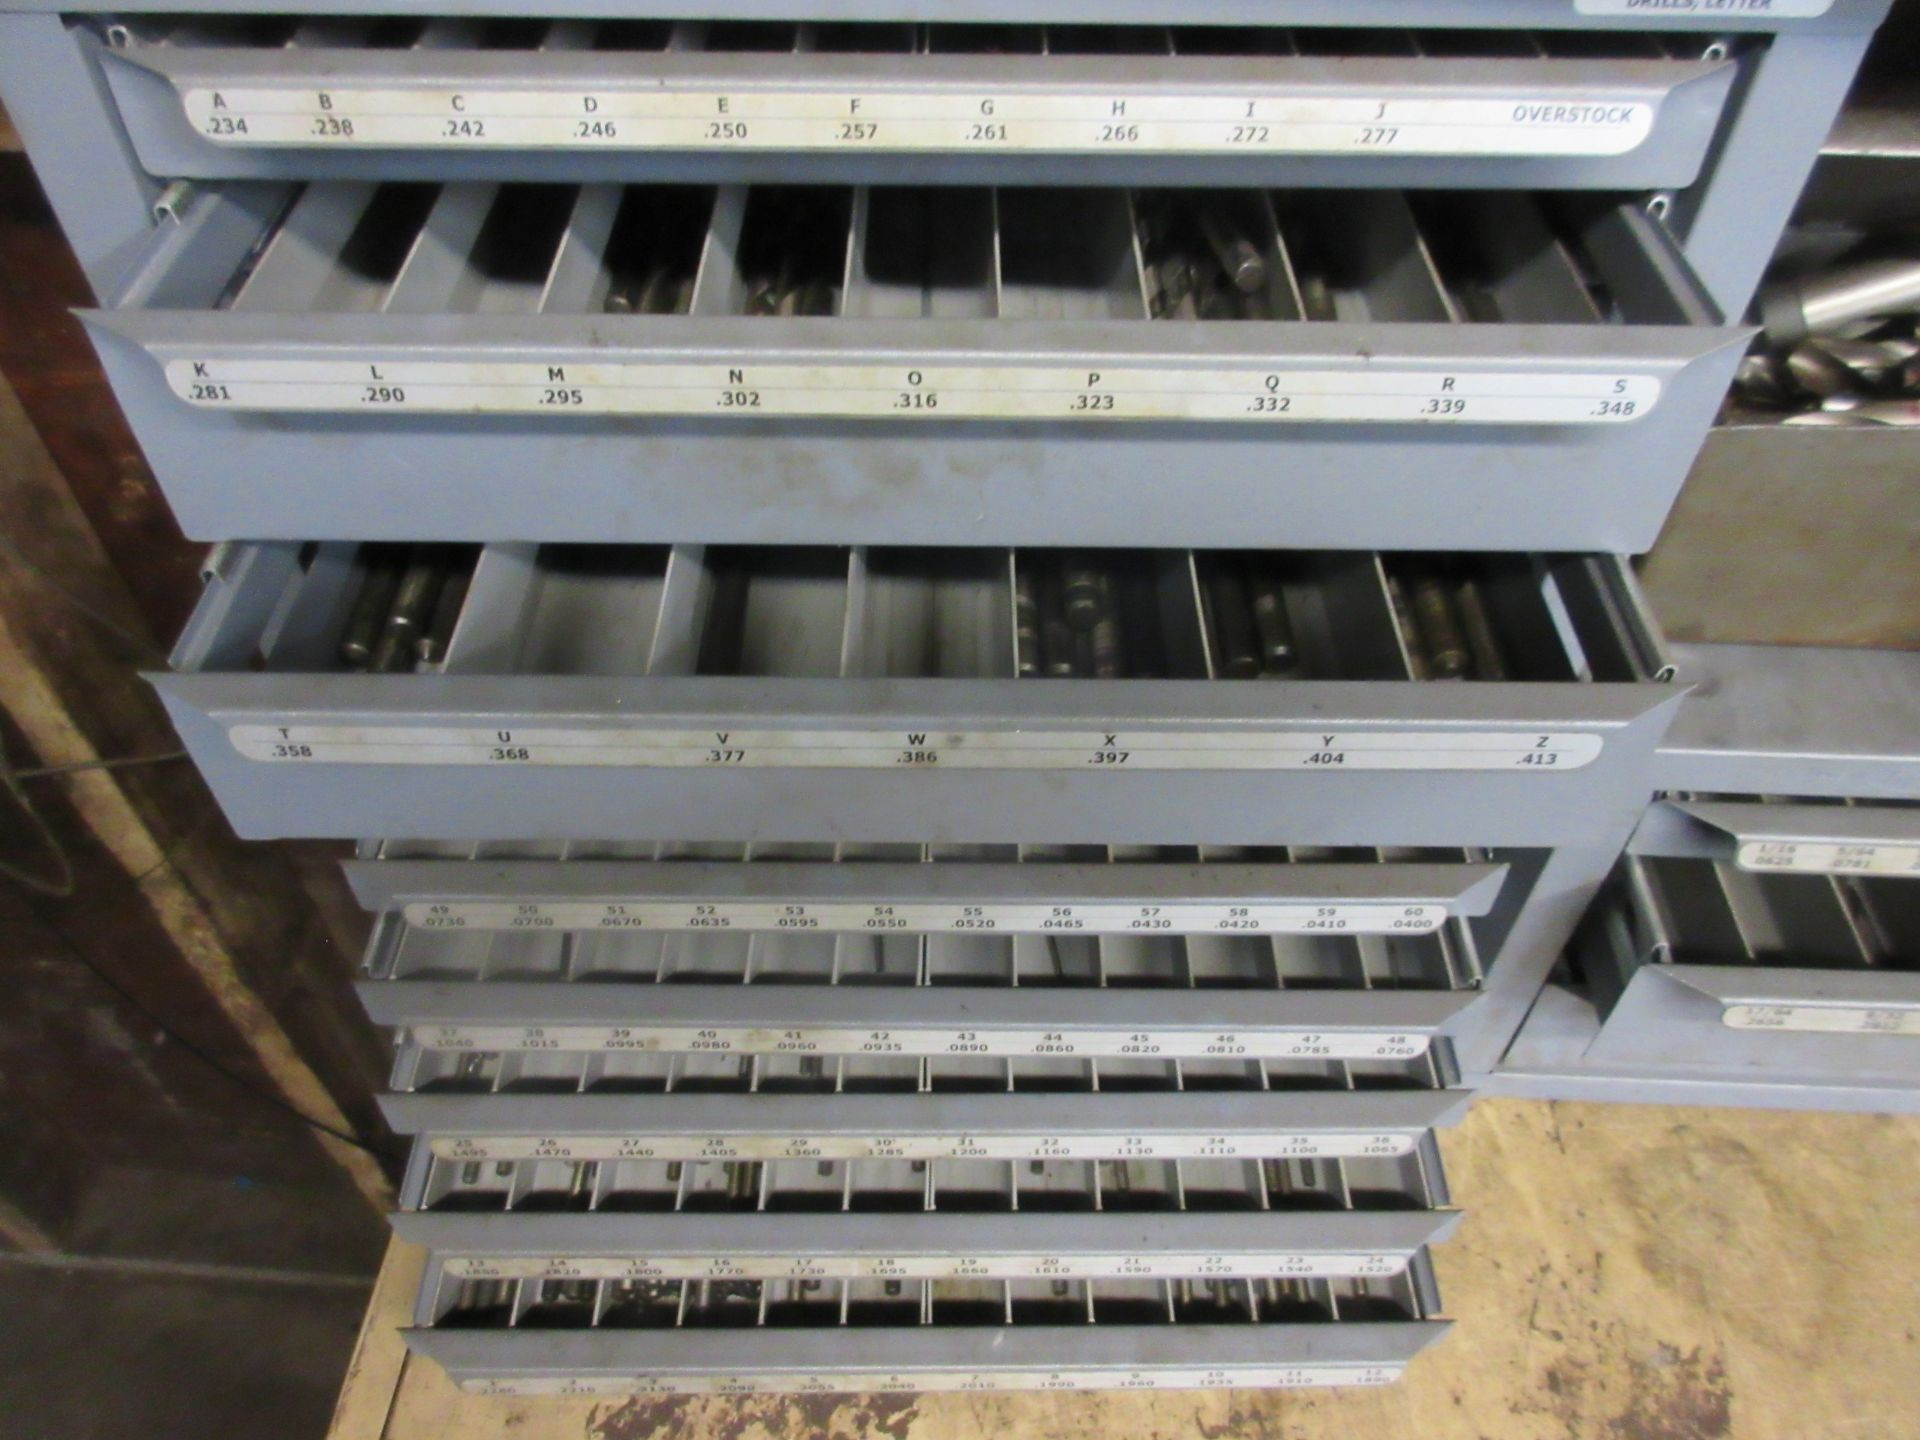 LOT (3) Drill Index Cabinets, Drills, Mills, Reamers, in Cabinets & on Shelf - Image 3 of 5